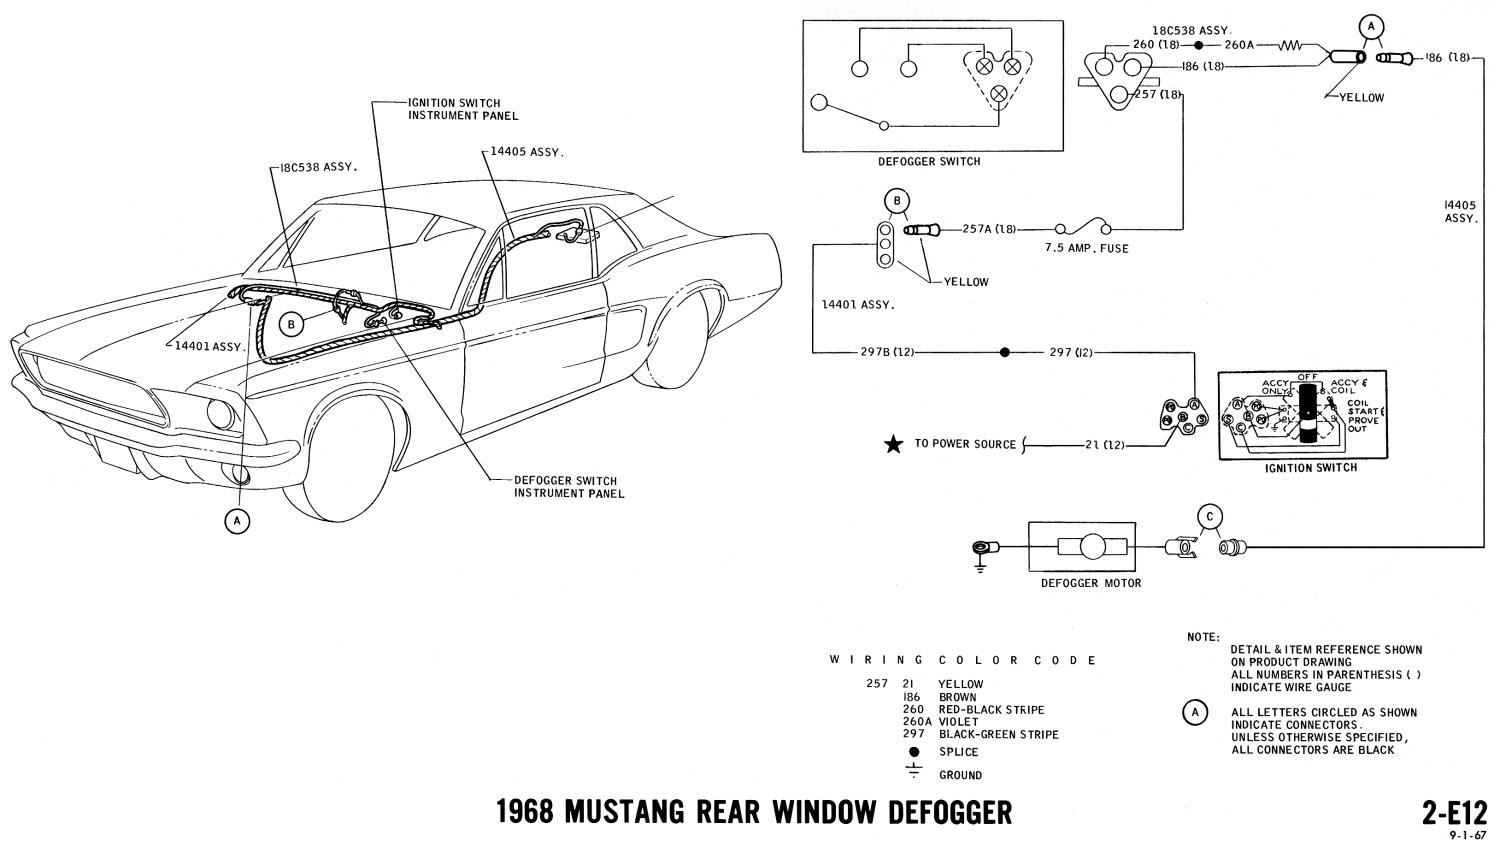 hight resolution of 1968 mustang wiring diagram rear window defrost schematic diagram 69 mustang window wiring diagram